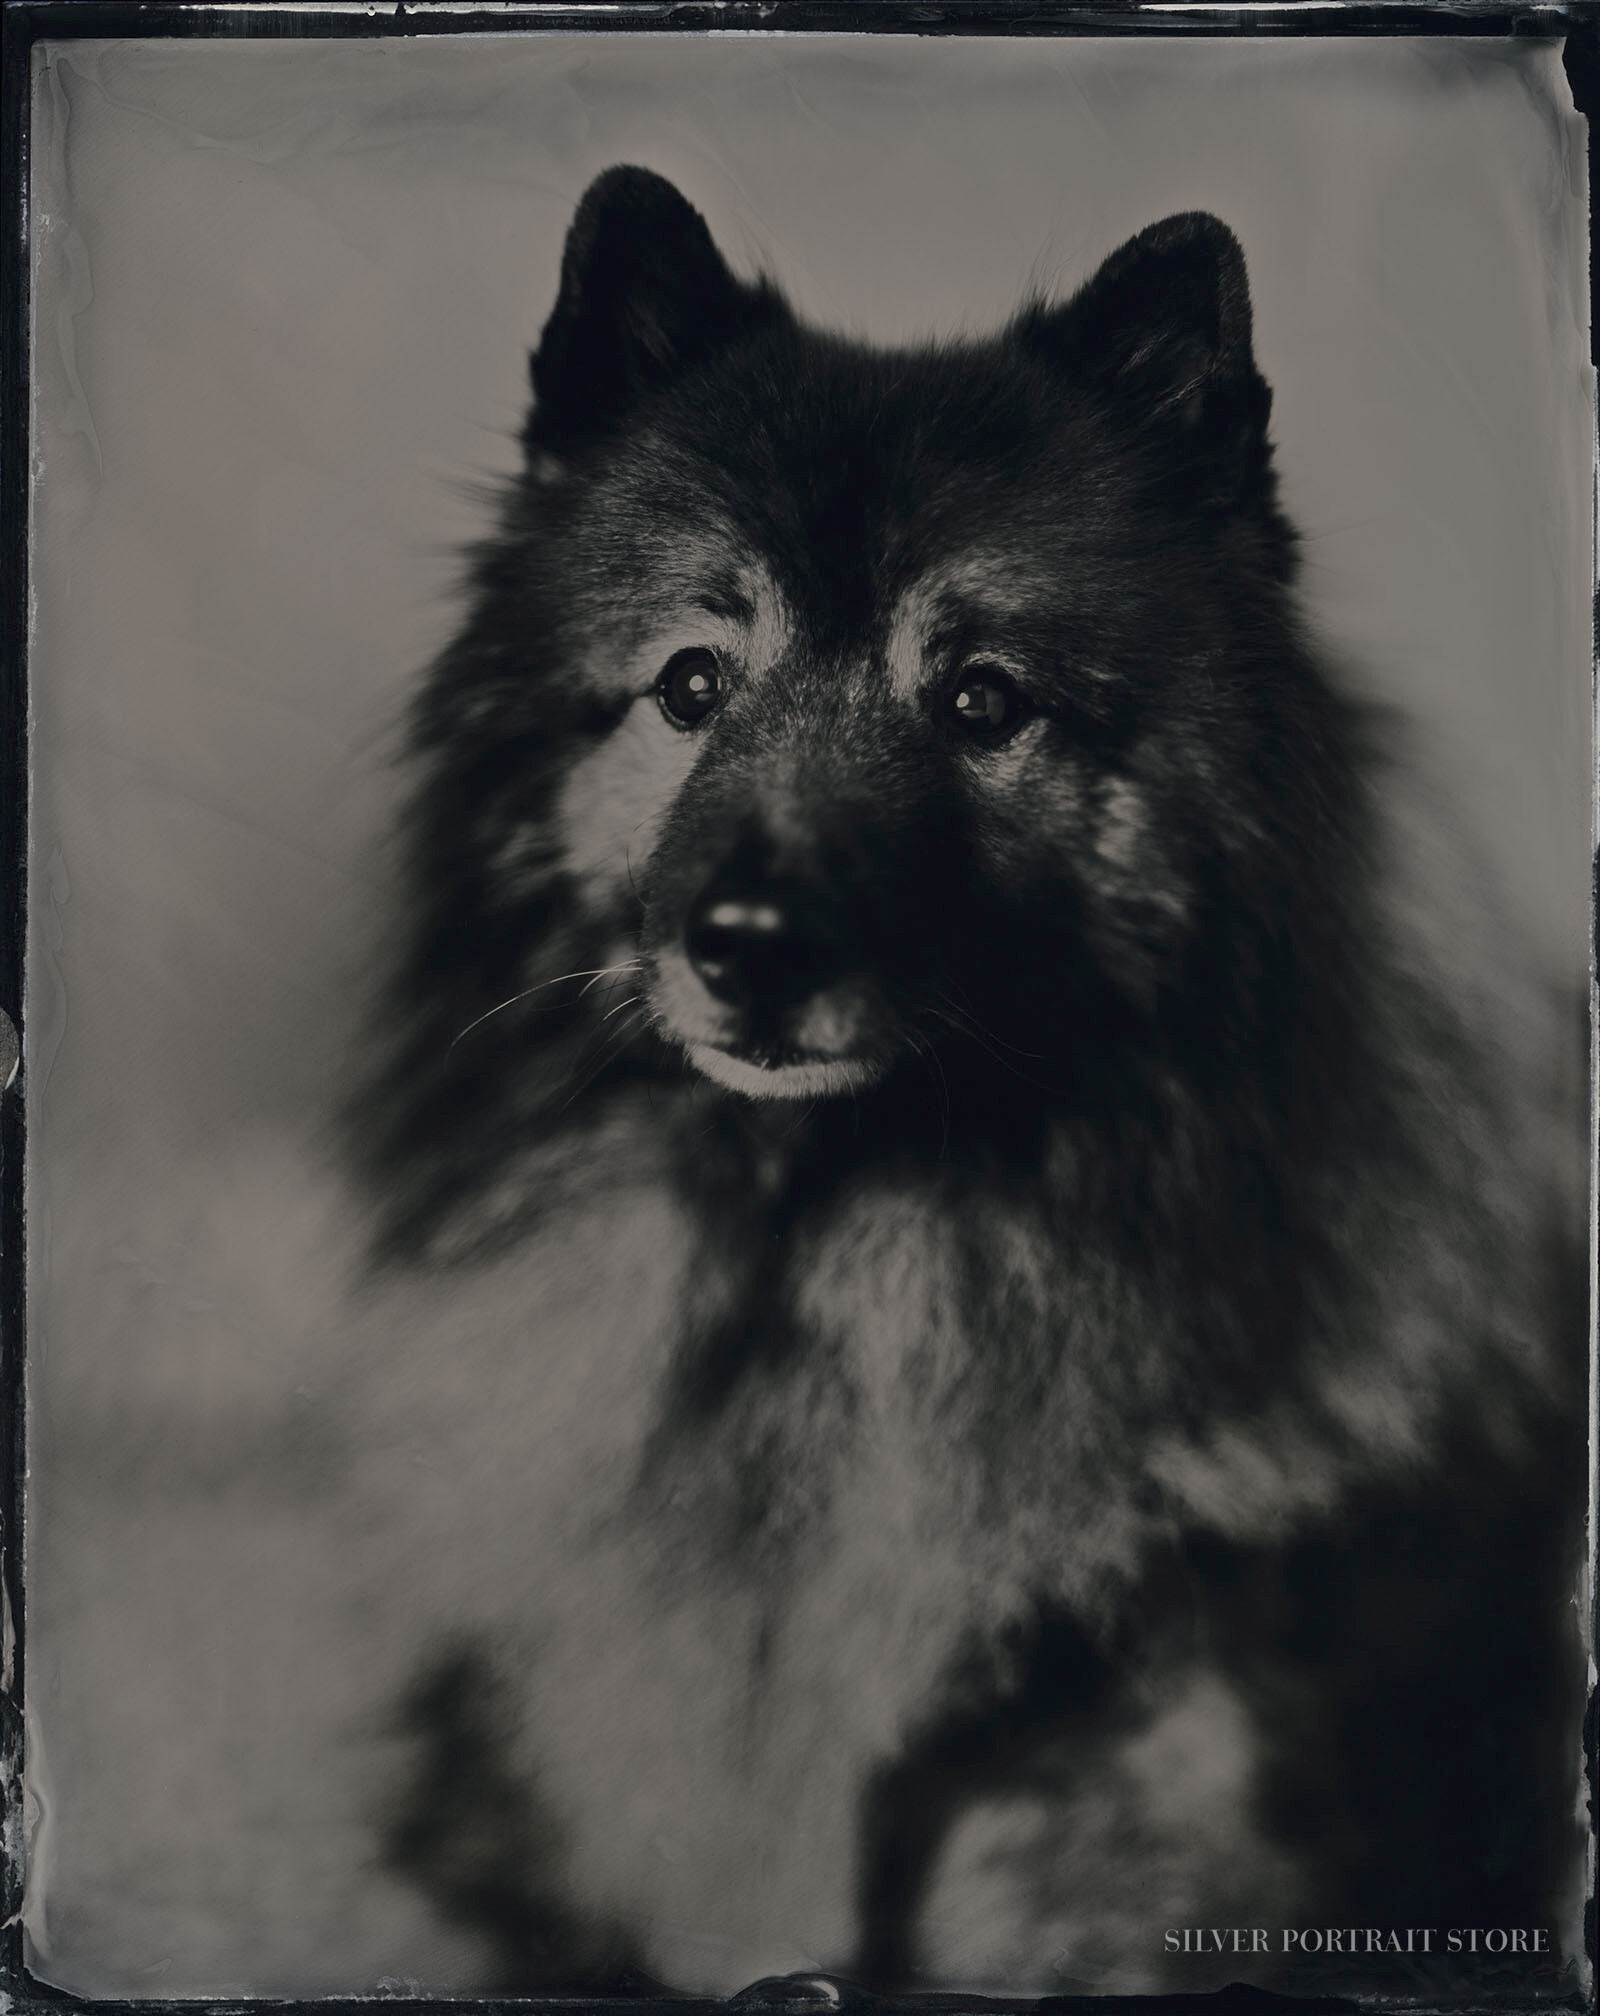 Kasper-Silver Portrait Store-Scan from Wet plate collodion-Tintype 20 x 25 cm.